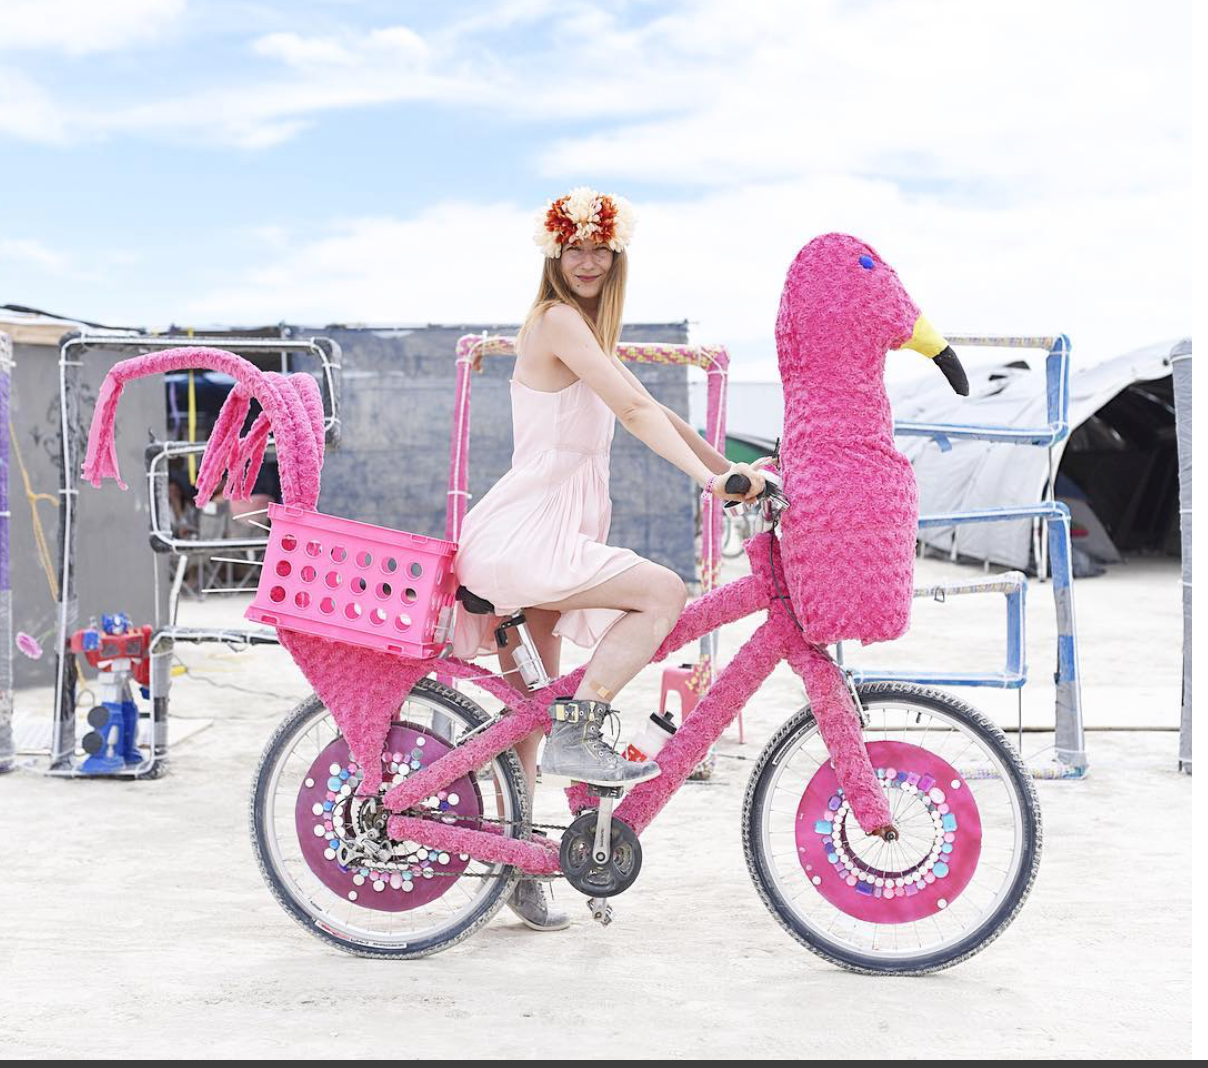 Customized bike at Burning Man